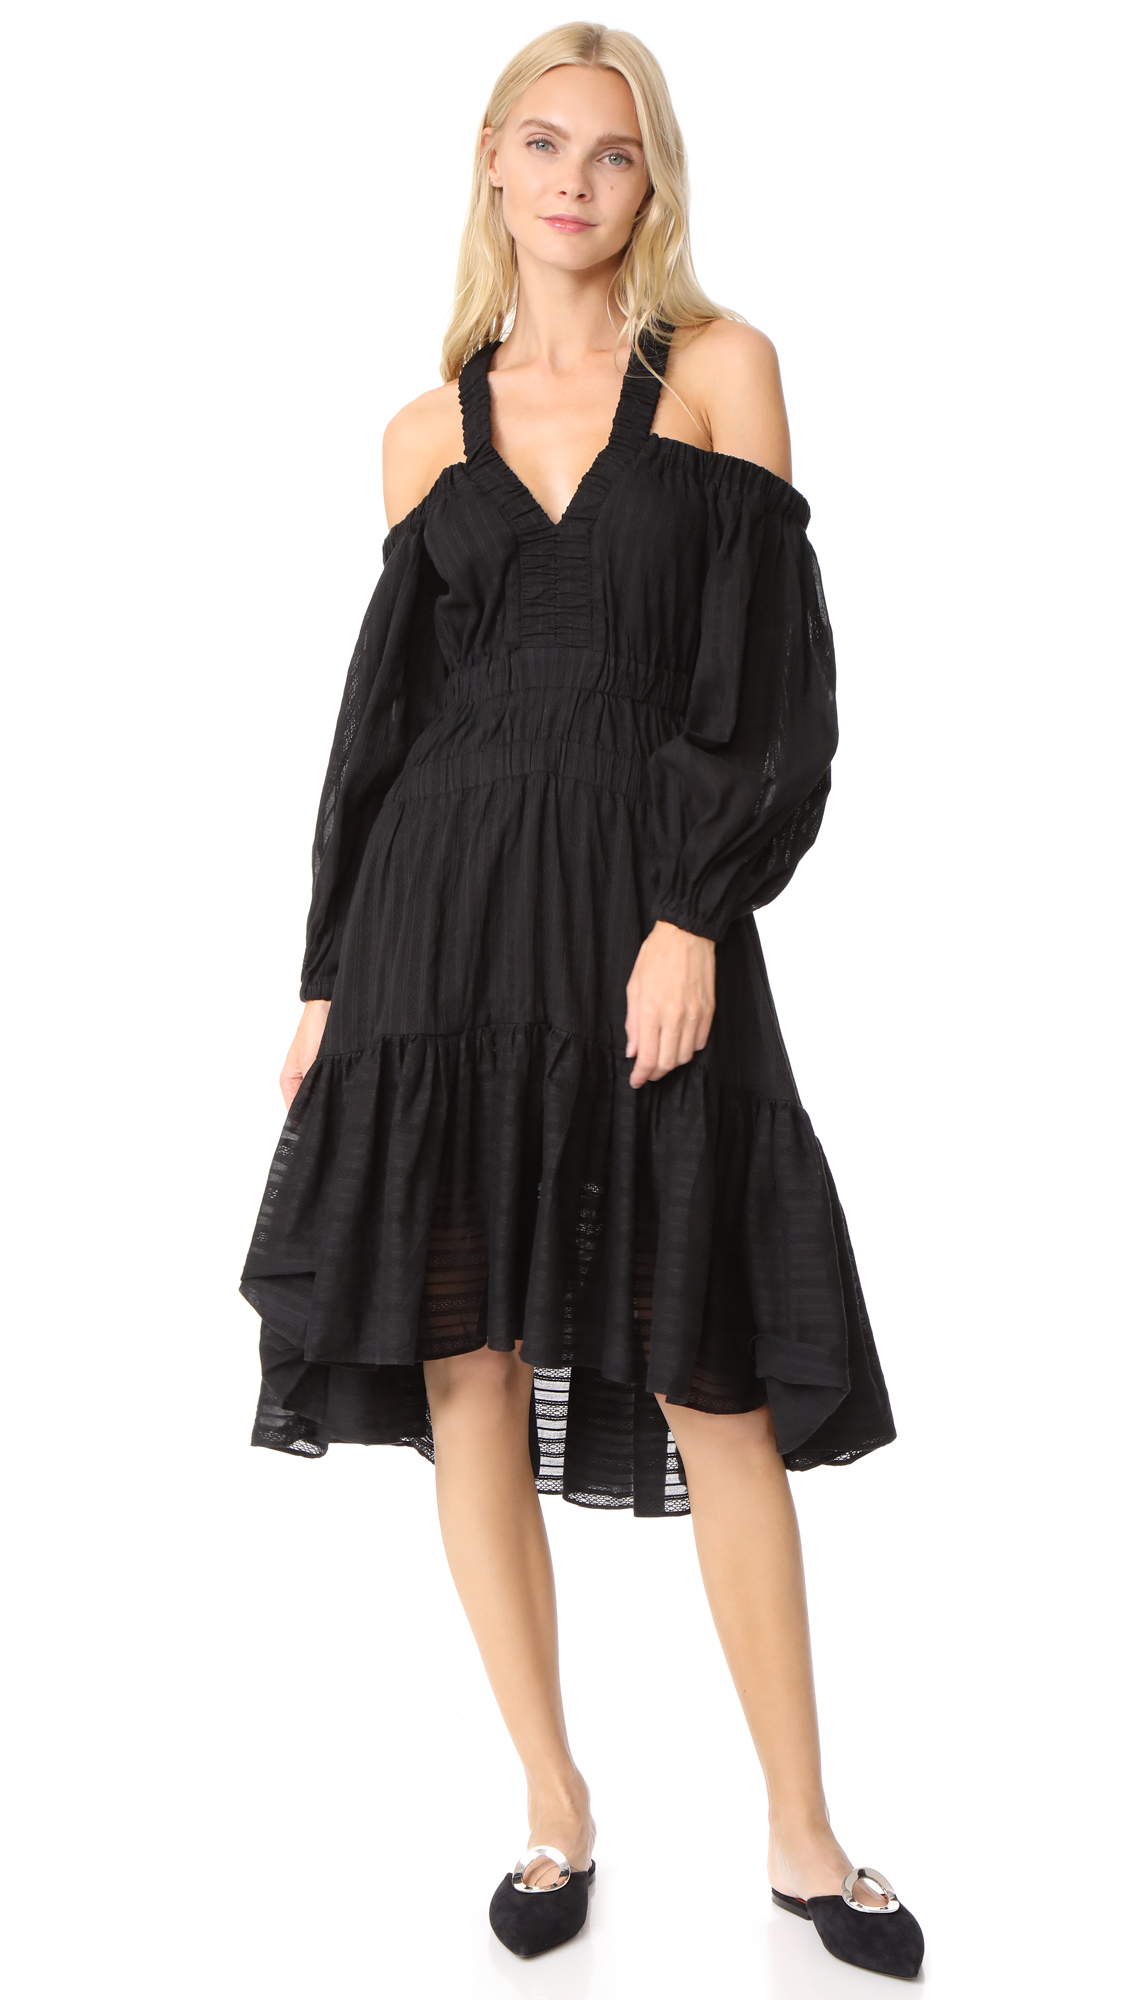 Acler Moresby Dress - Black